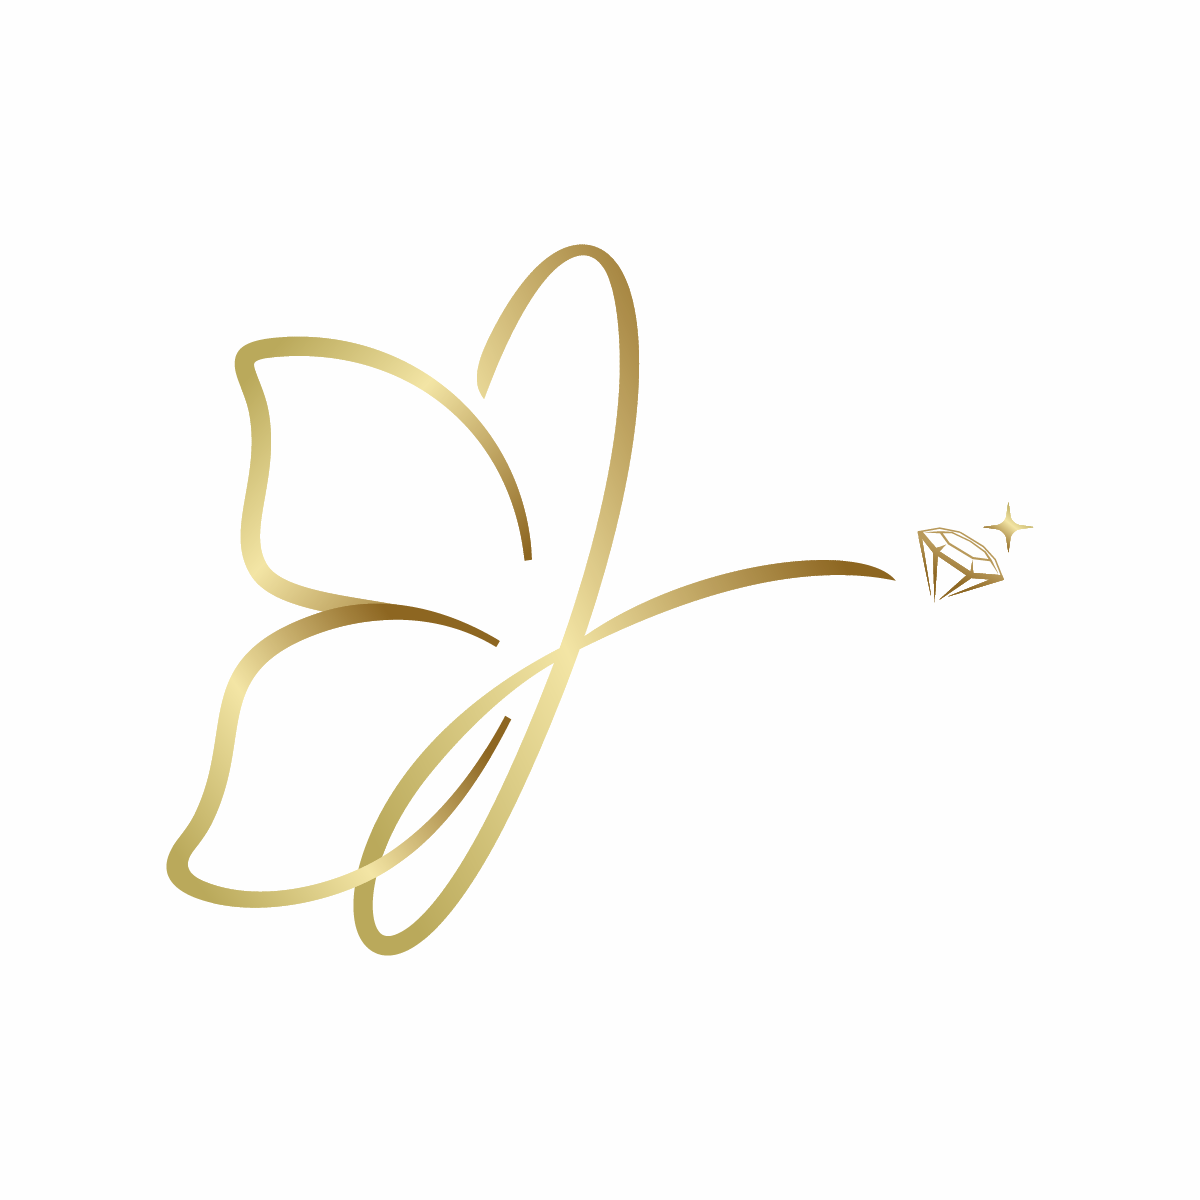 In search of a unique butterfly logo that expresses creativity and art